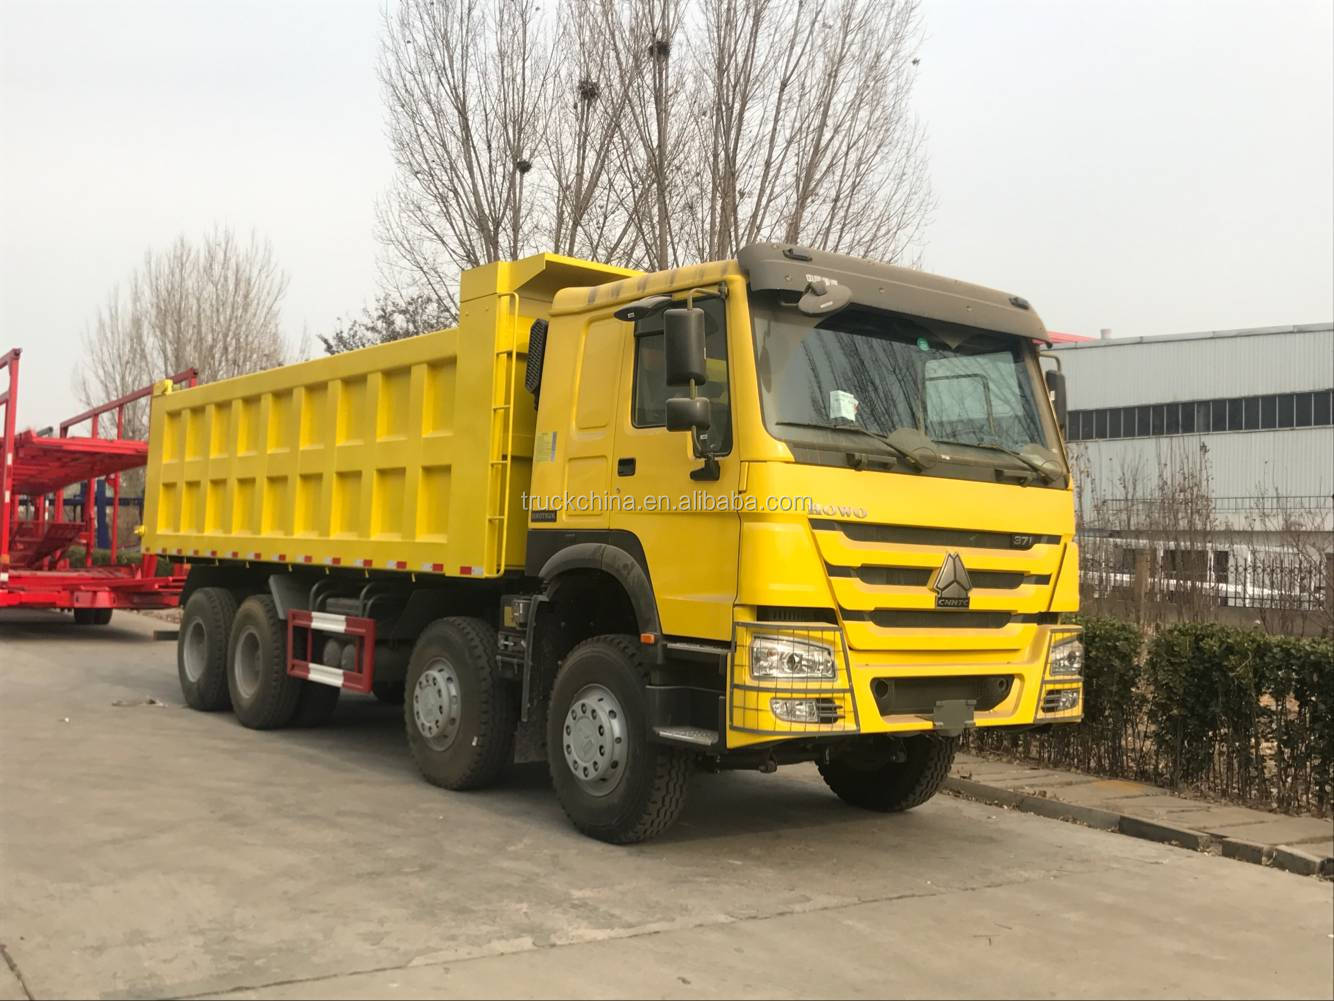 Big Dump Trucks >> Brand New Big Dump Trucks Sinotruk Howo 8x4 Dump Truck Capacity Buy 8x4 Dump Truck Capacity Sinotruk Howo 8x4 Dump Truck Big Dump Trucks Product On